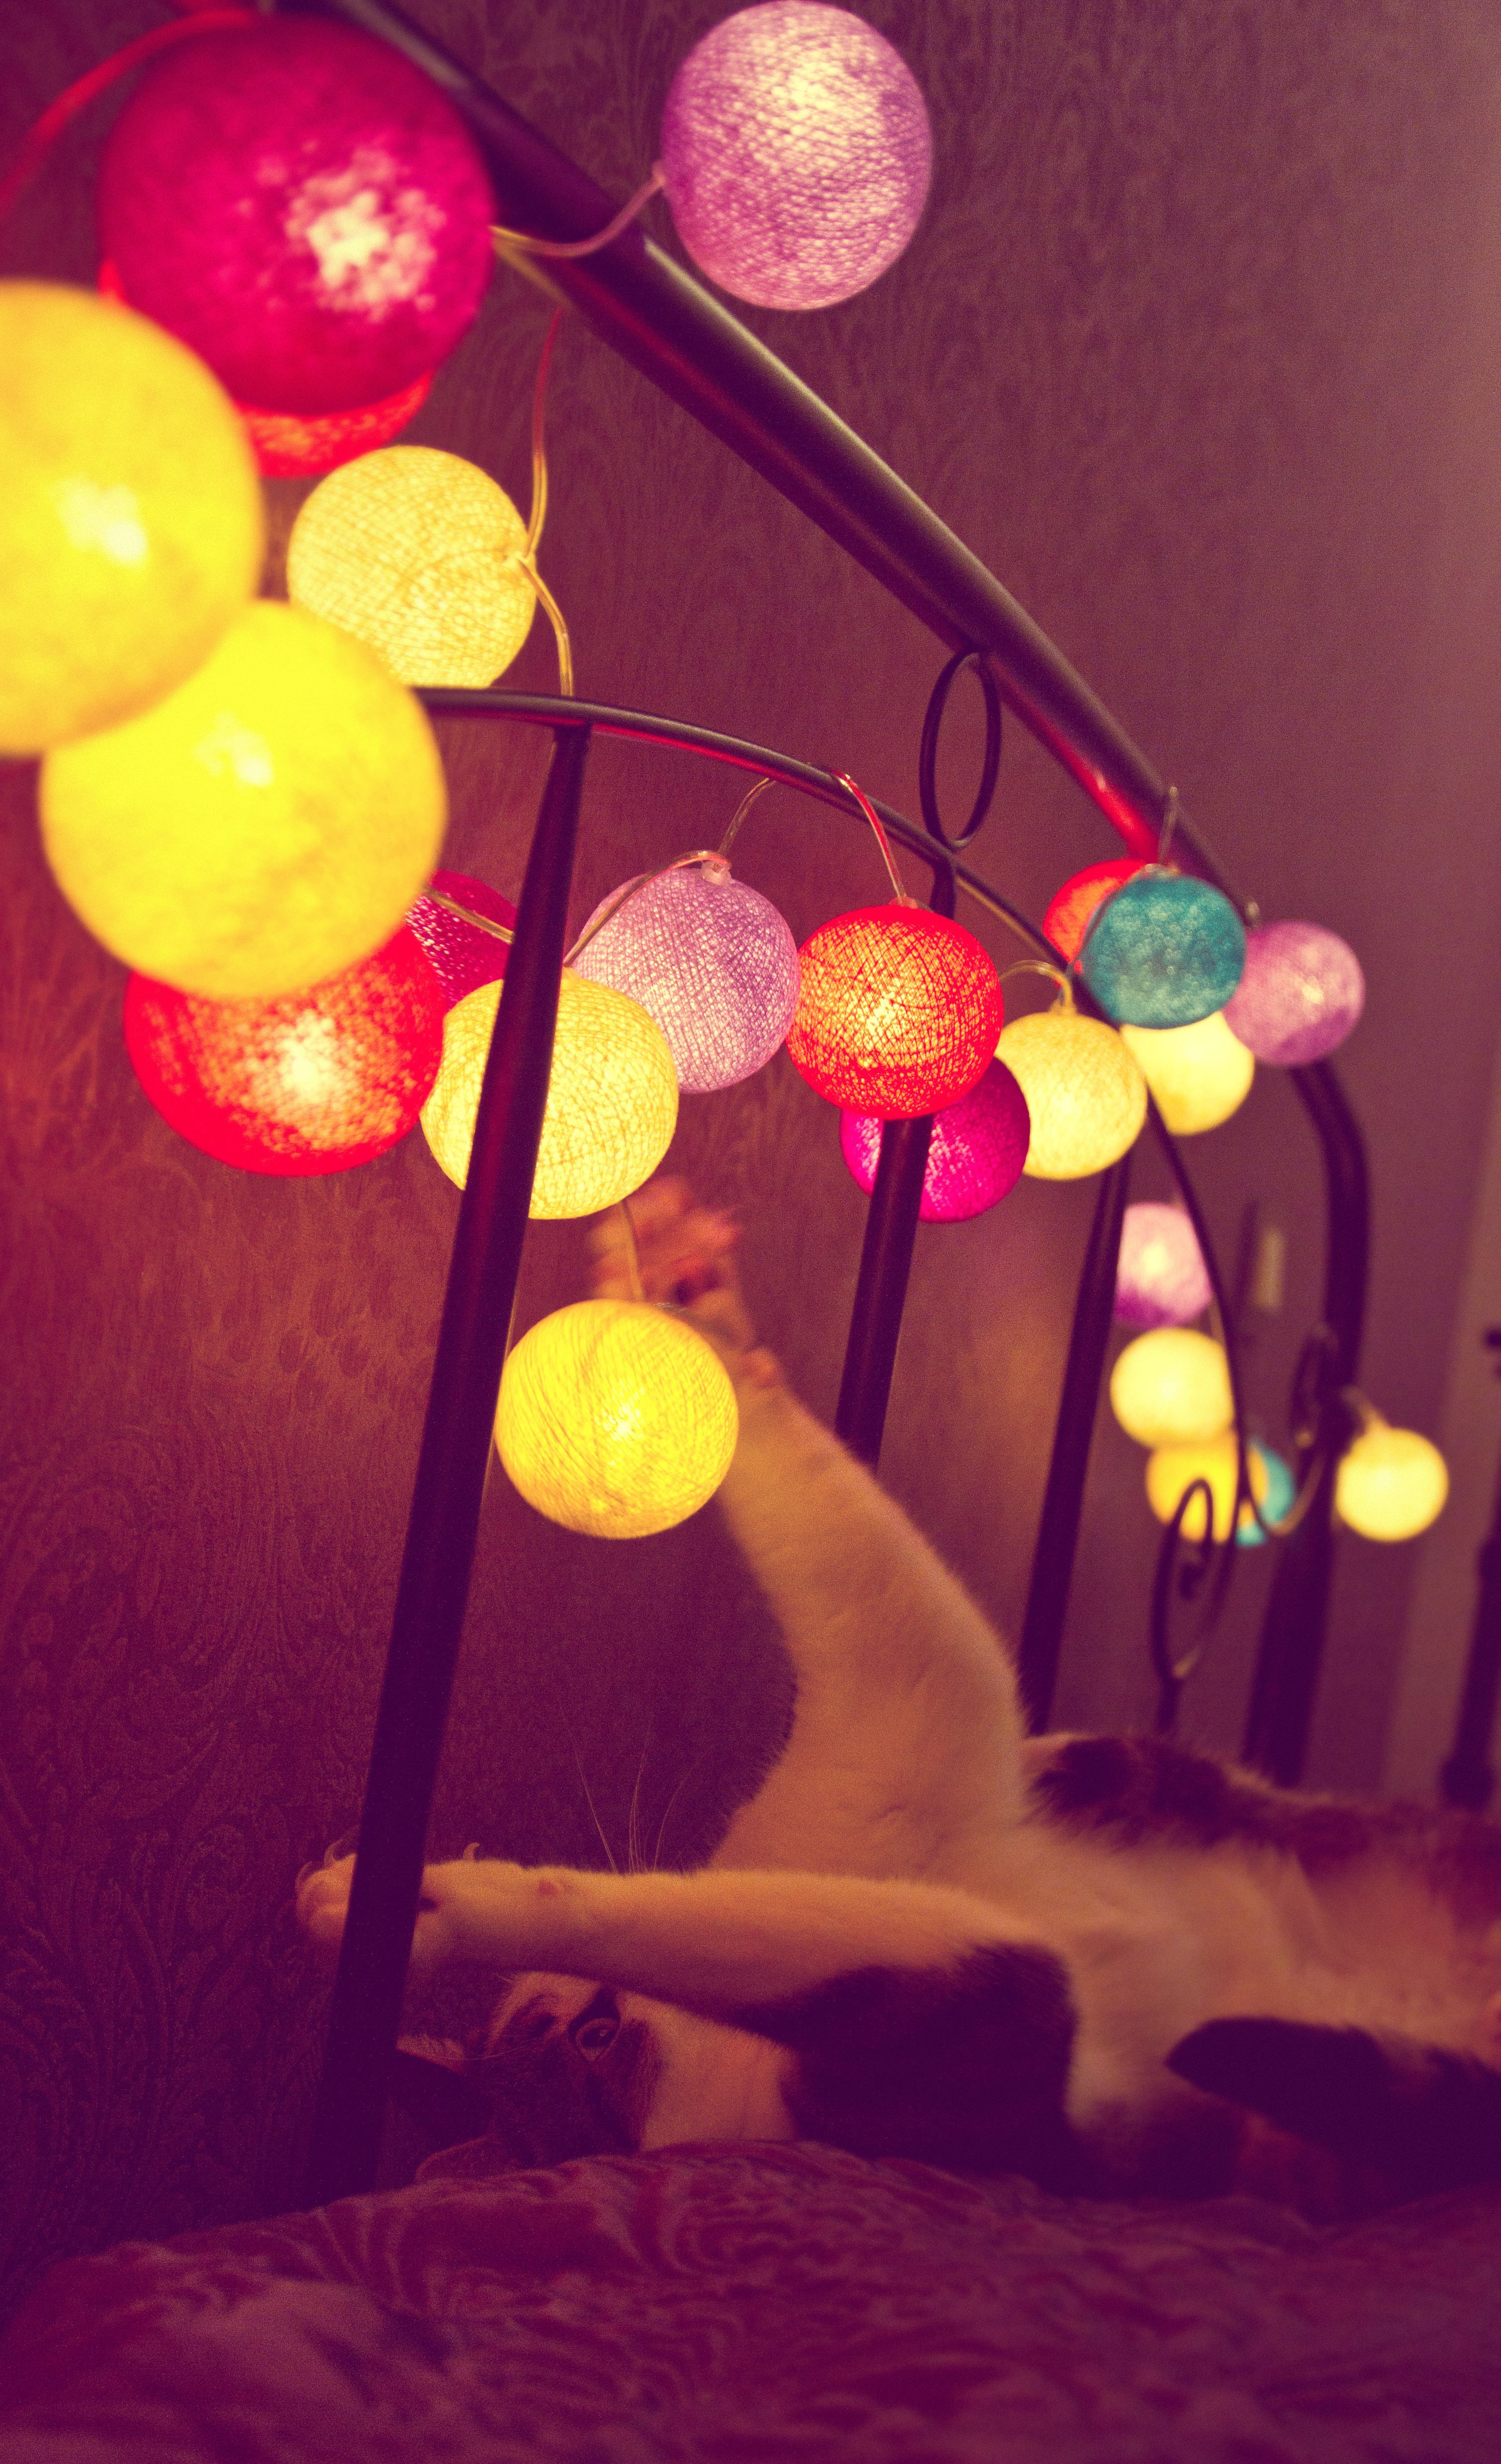 Decorative Ball Lights Cotton Ball Lights  Products I Love  Pinterest  Cotton Ball